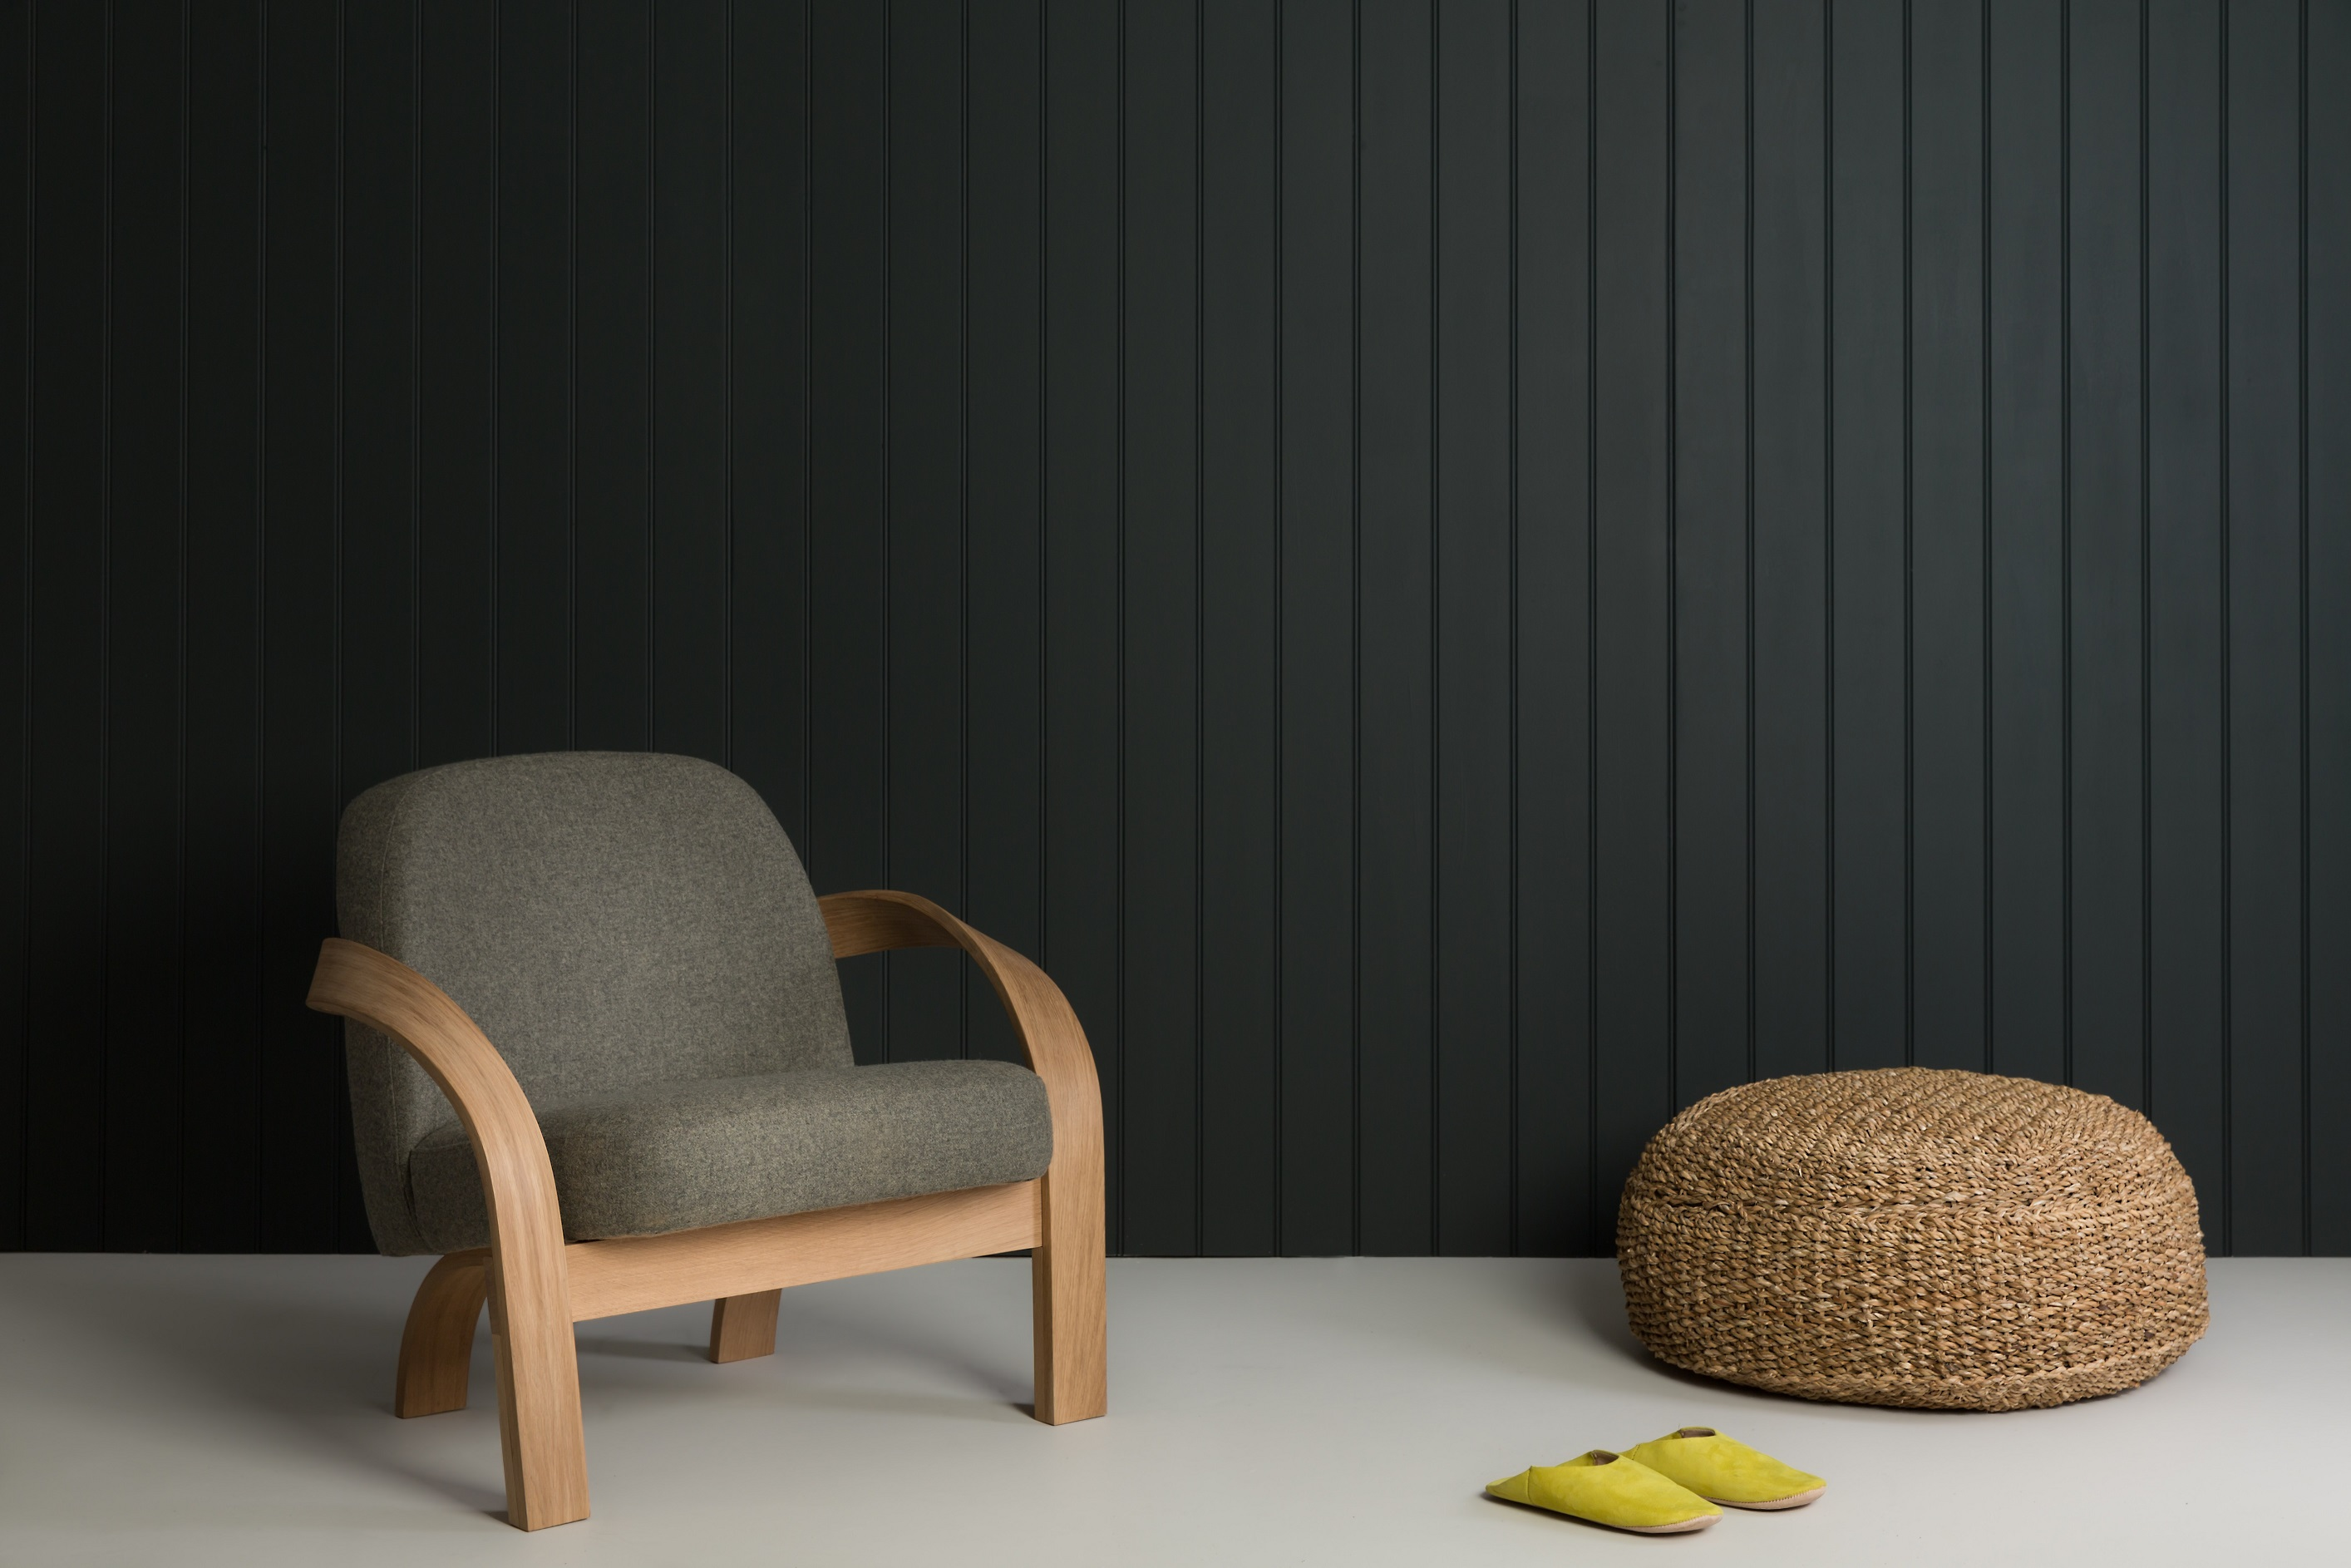 """A photograph of Tom Raffield's ARBOR CHAIR accompanying an interview with Tom about the role of heritage in his craftsmanship. Illustrating the FHOLOGUE blog post """"Rather British Heritage"""". Image copyright http://www.tomraffield.com."""